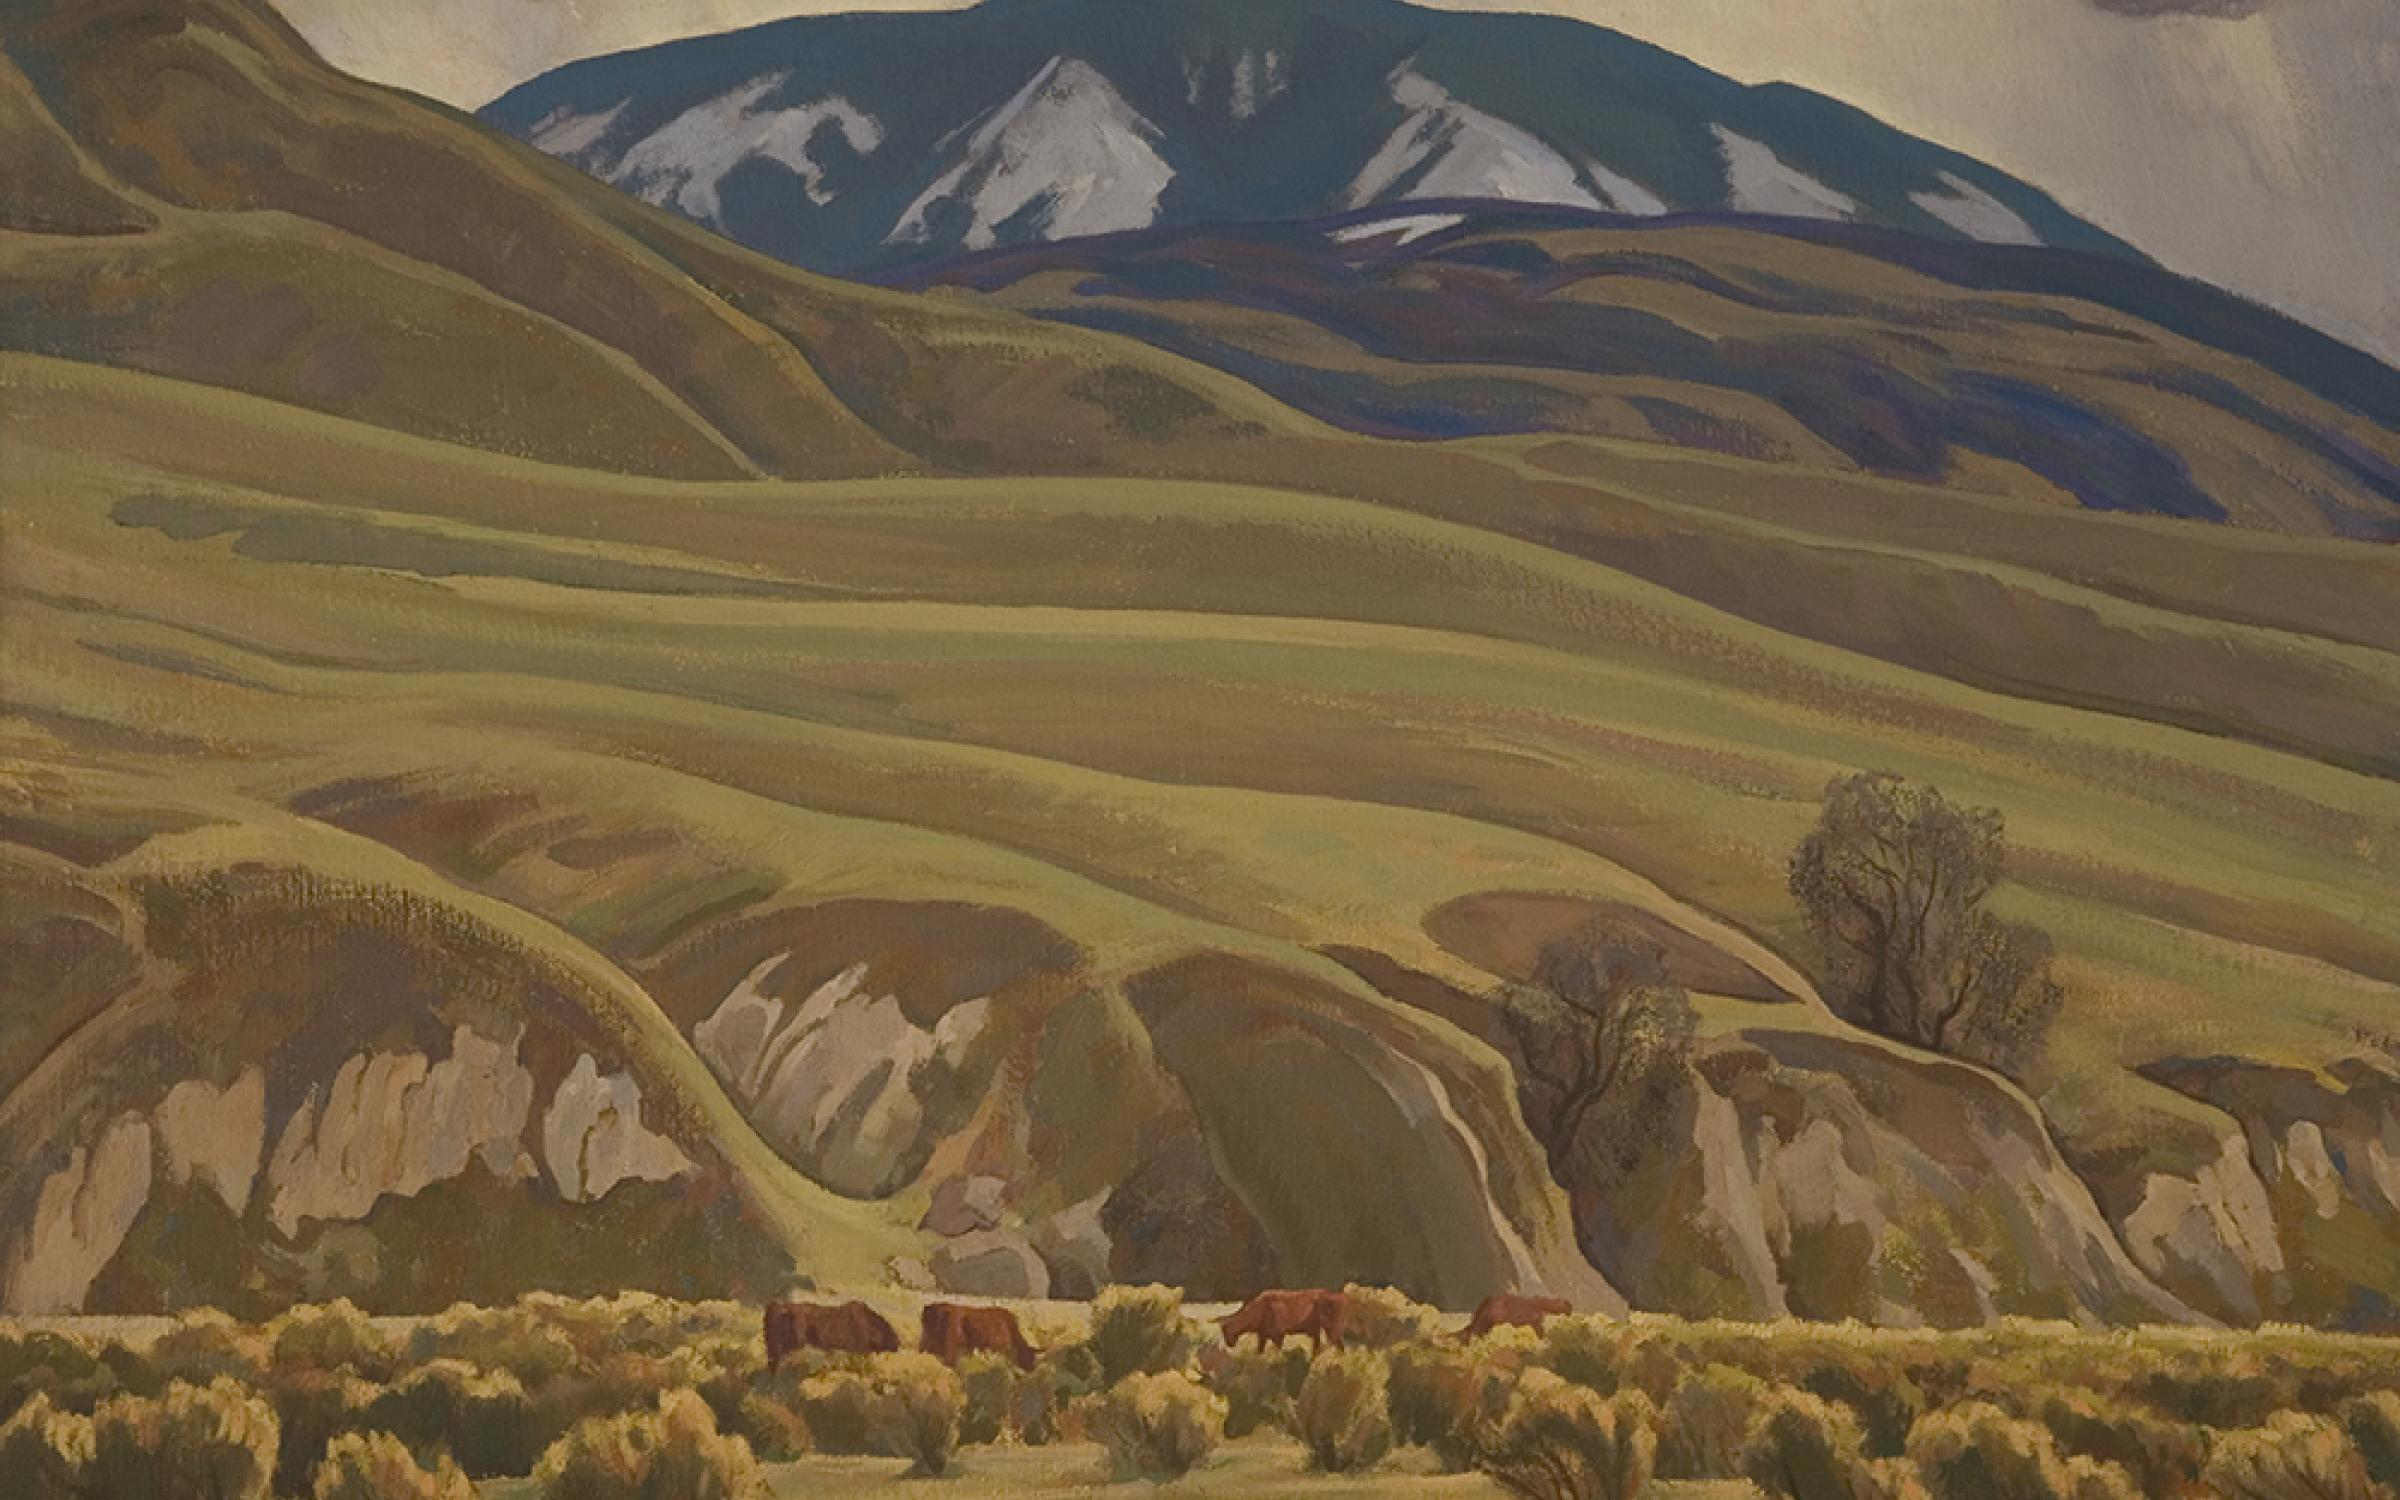 Maynard Dixon (American, 1875-1946) Springtime on Bear Mountain, 1930, oil on canvas, gift of Mr. and Mrs. Alan B. Blood, framed with funds from the Ann K. Stewart Docent and Volunteer Conservation Fund, UMFA1996.54.1